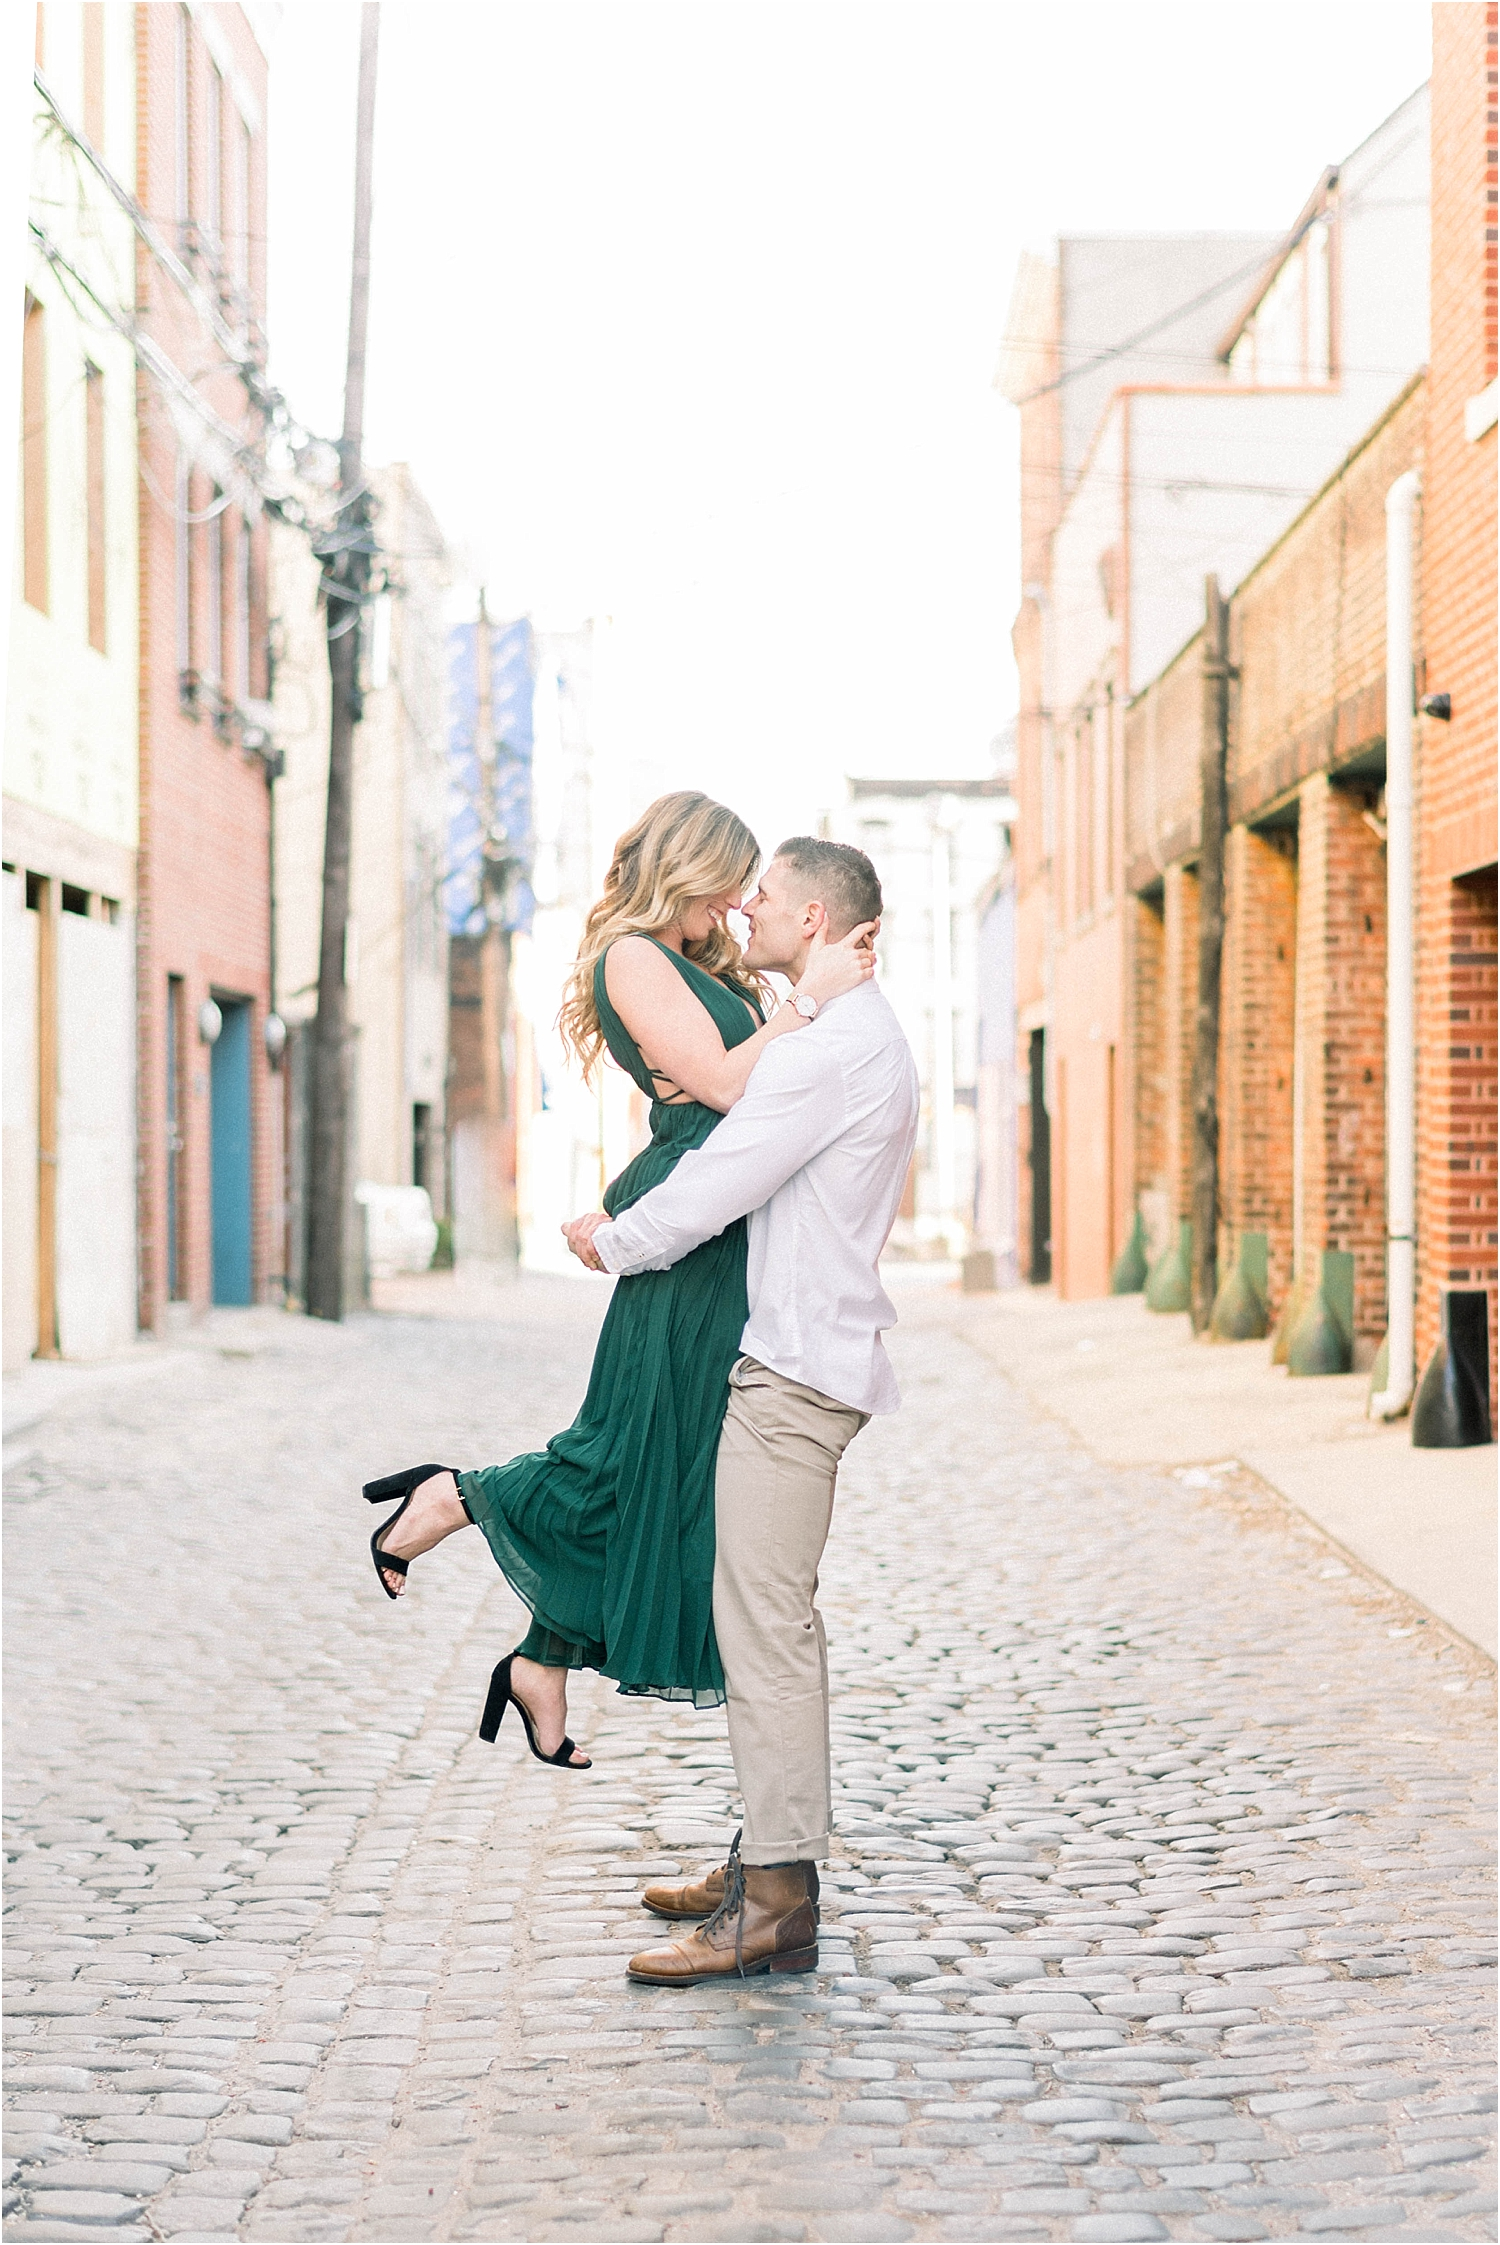 hoboken engagement session nj wedding photographer_0008.jpg